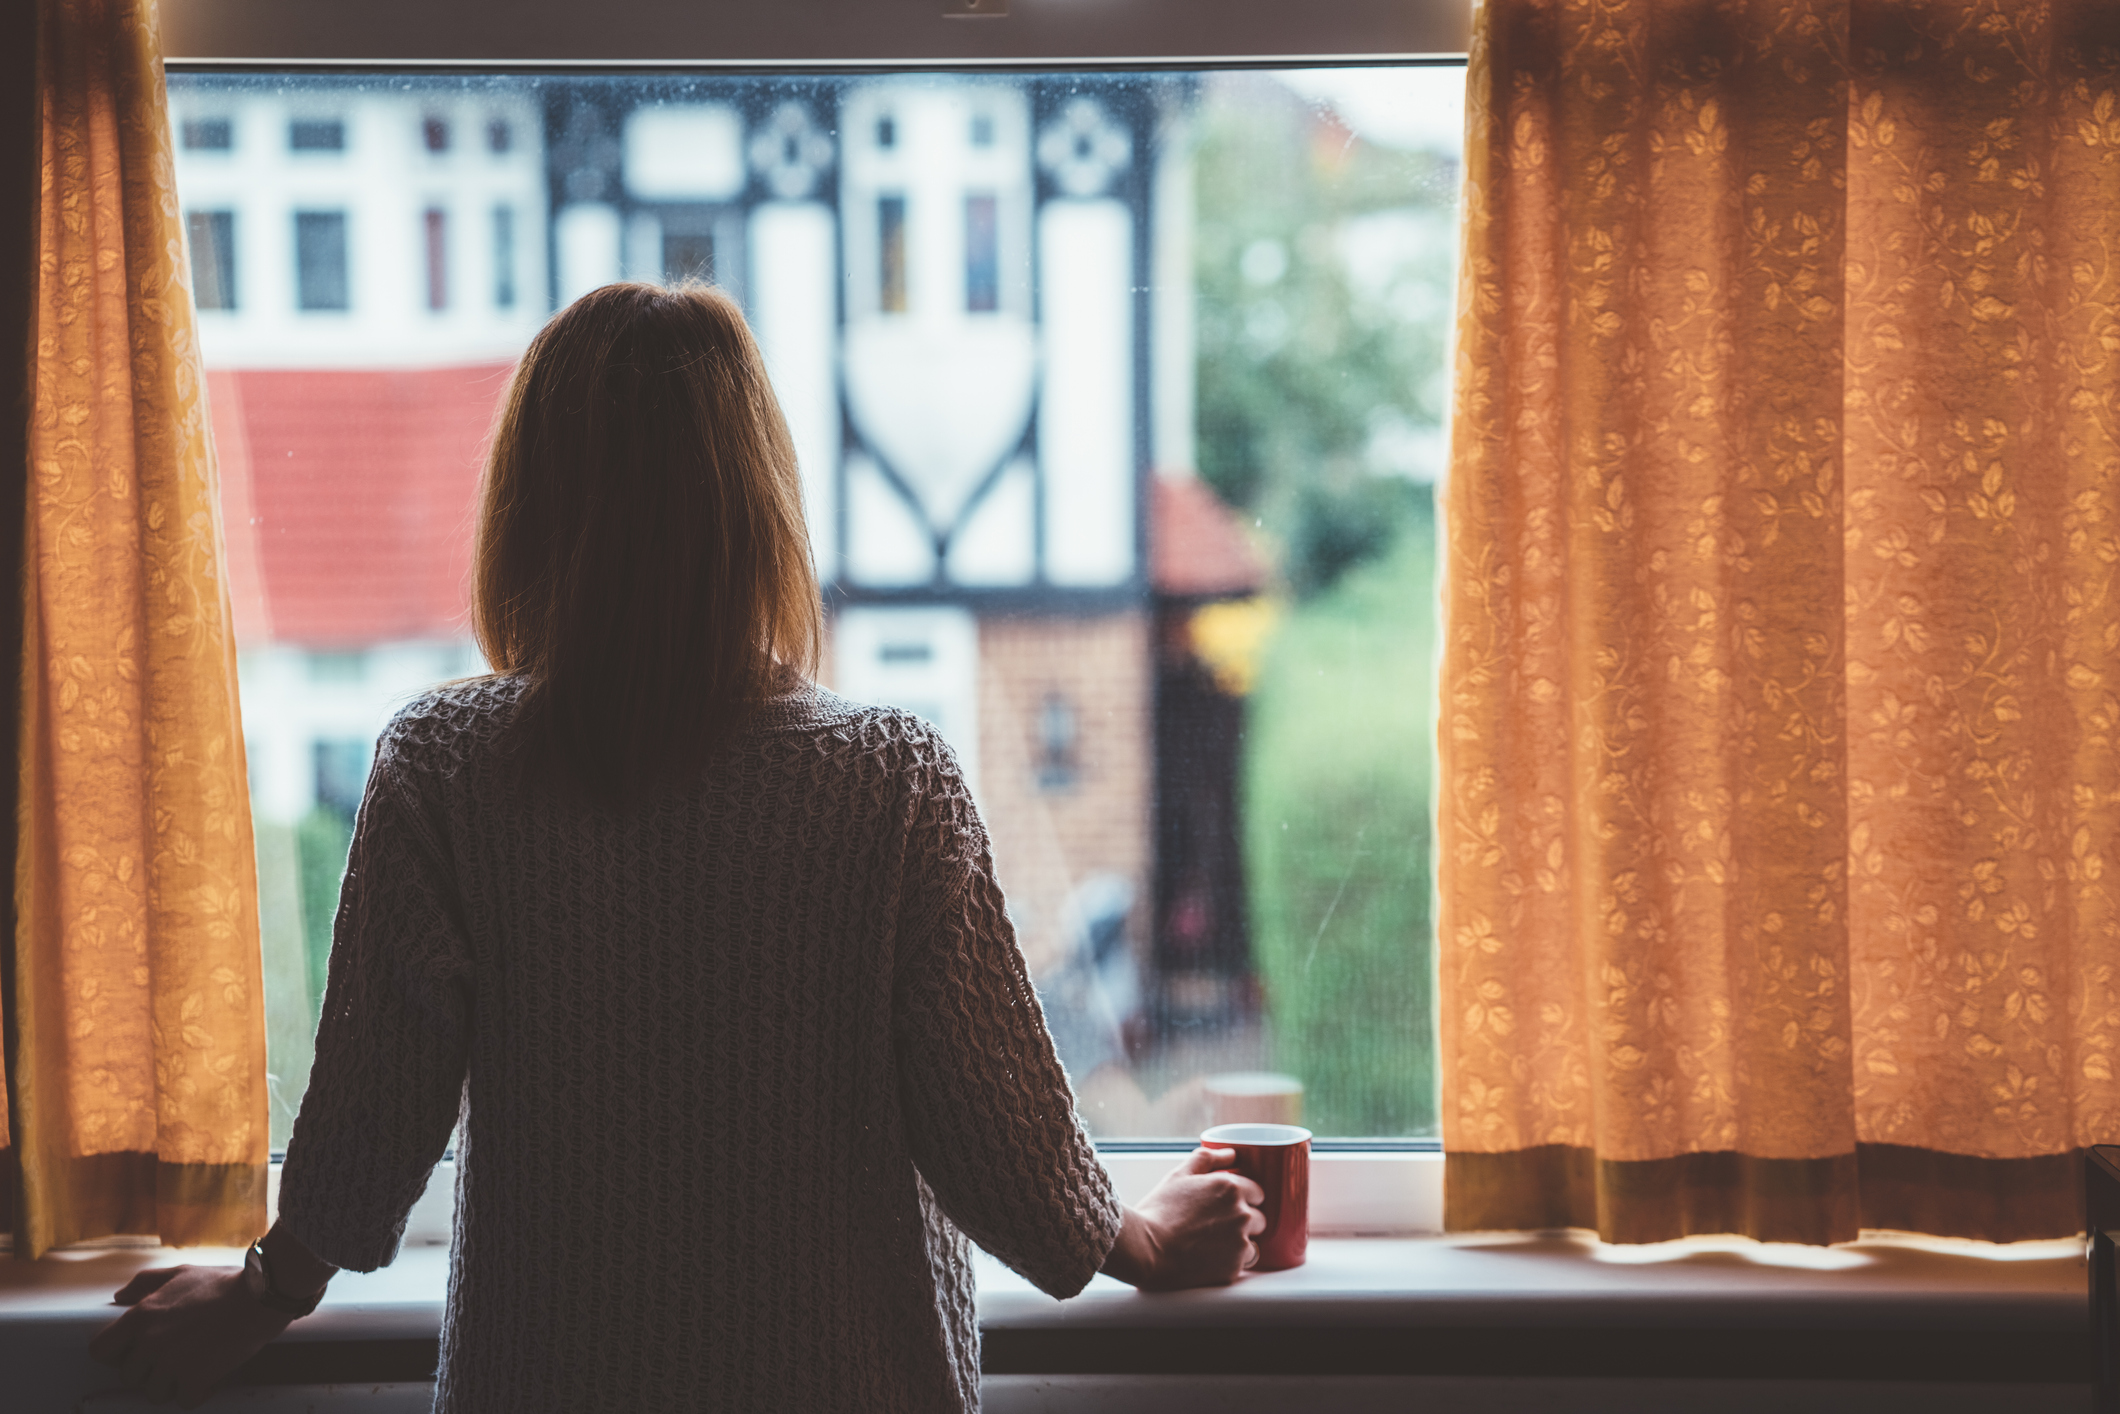 We need to find new ways to stay connected while self-isolating. Getty Images